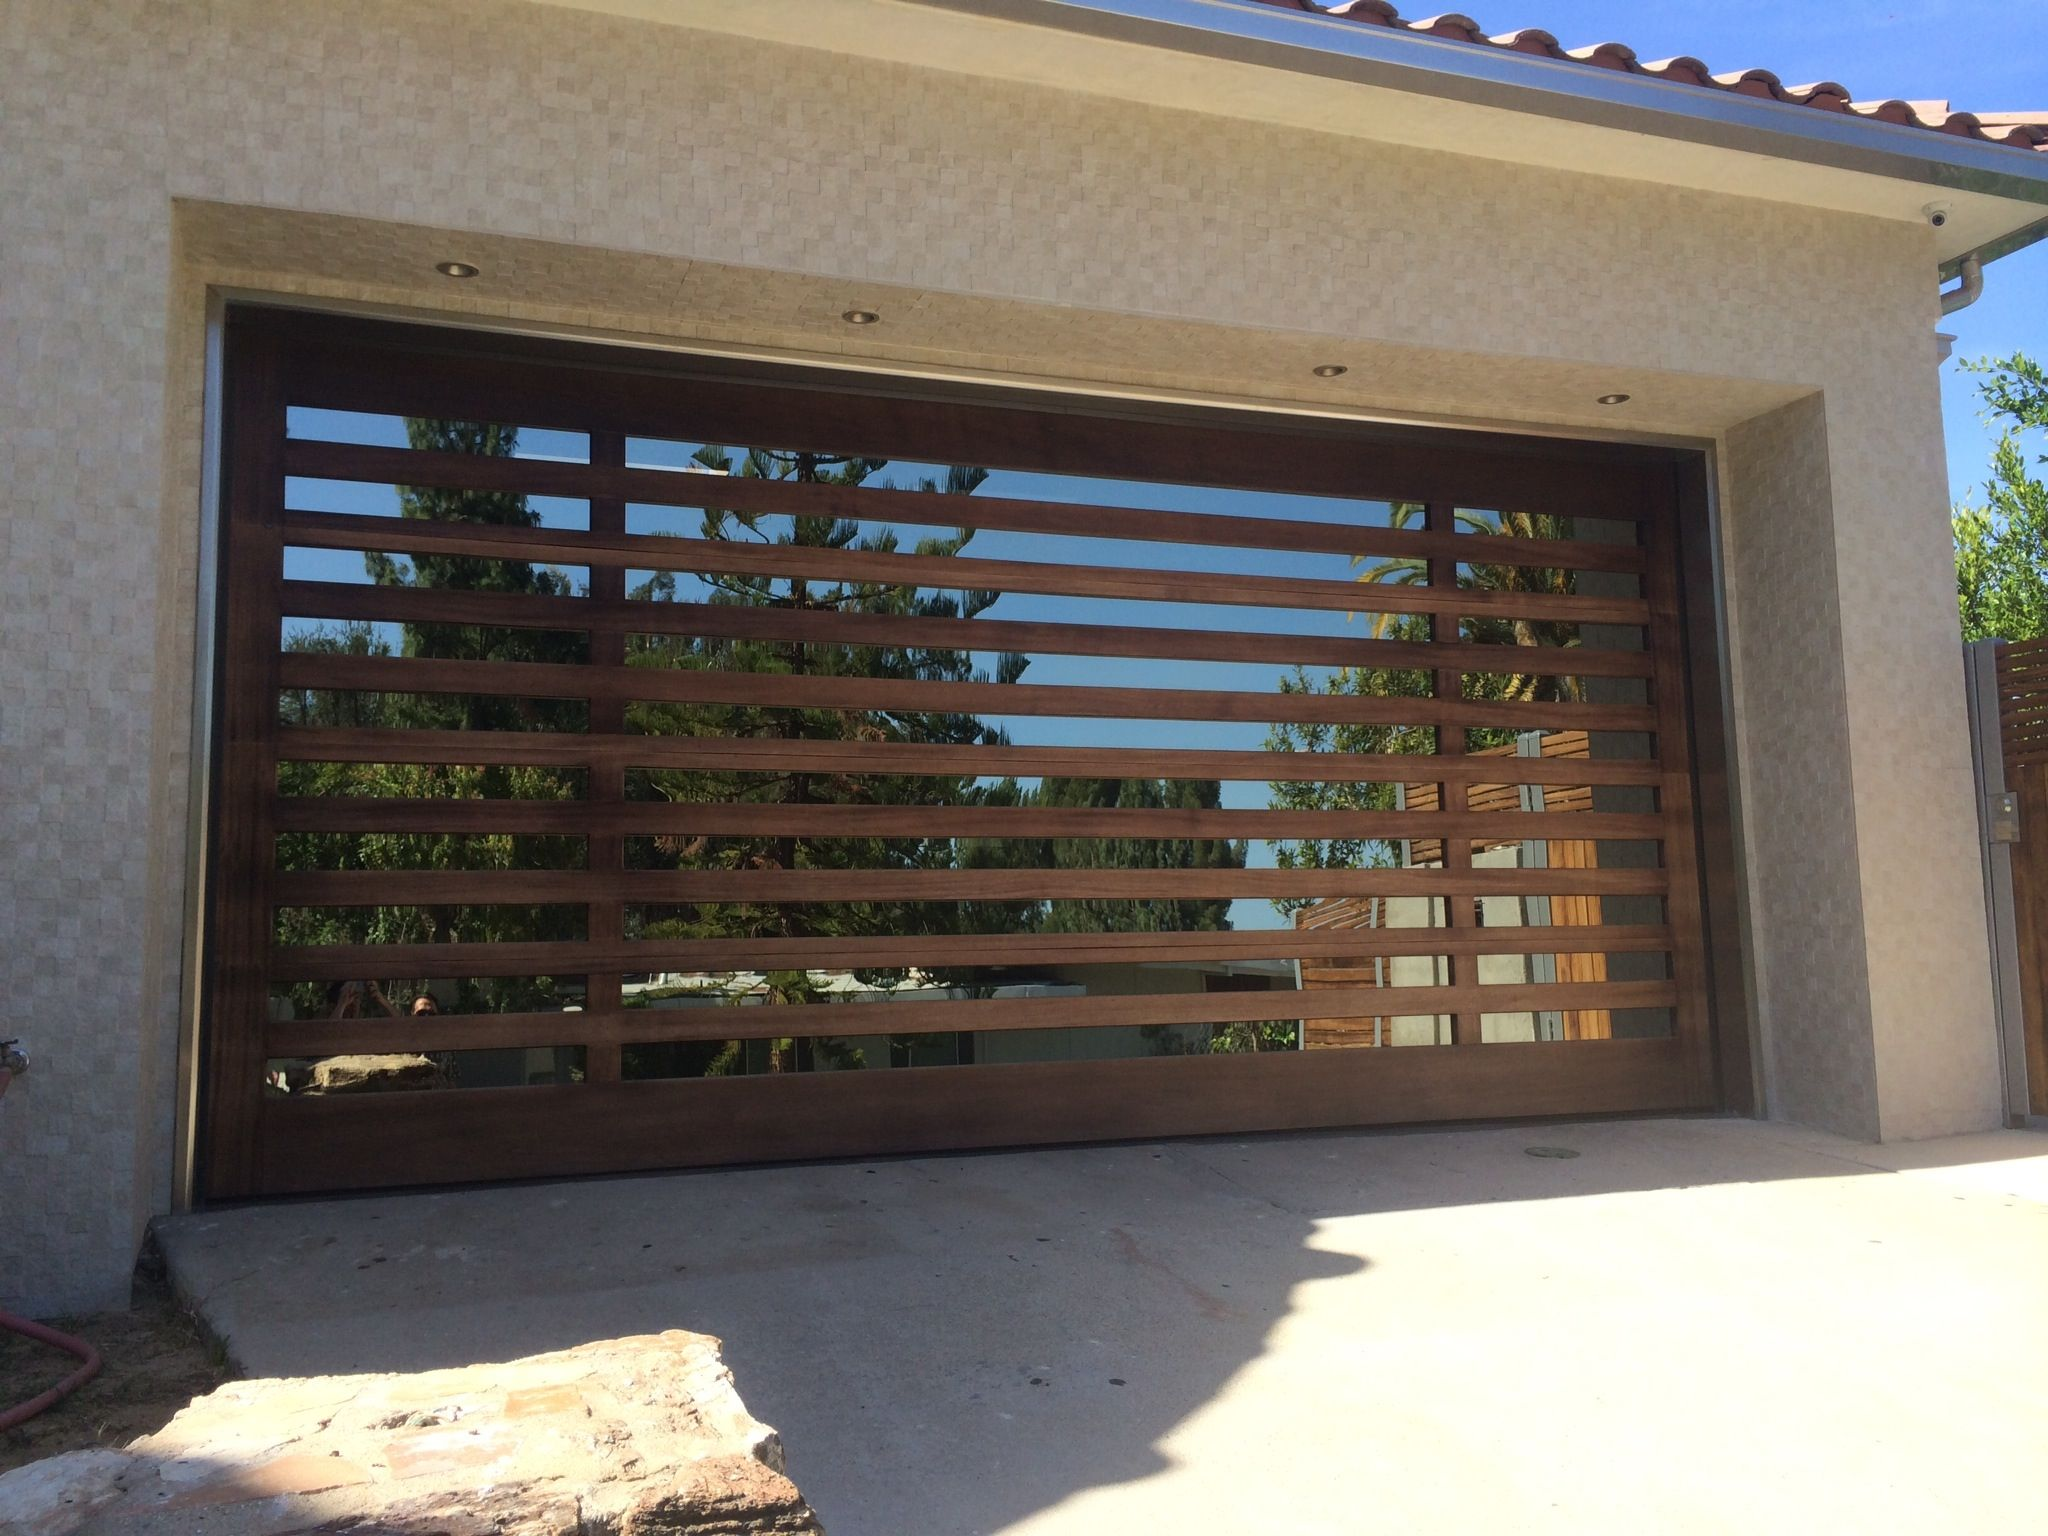 modern wood garage door. Brilliant Modern Garage Doors Design With Wooden And Glass Material Combined Concrete Wall In Cream Color Ideas Wood Door O